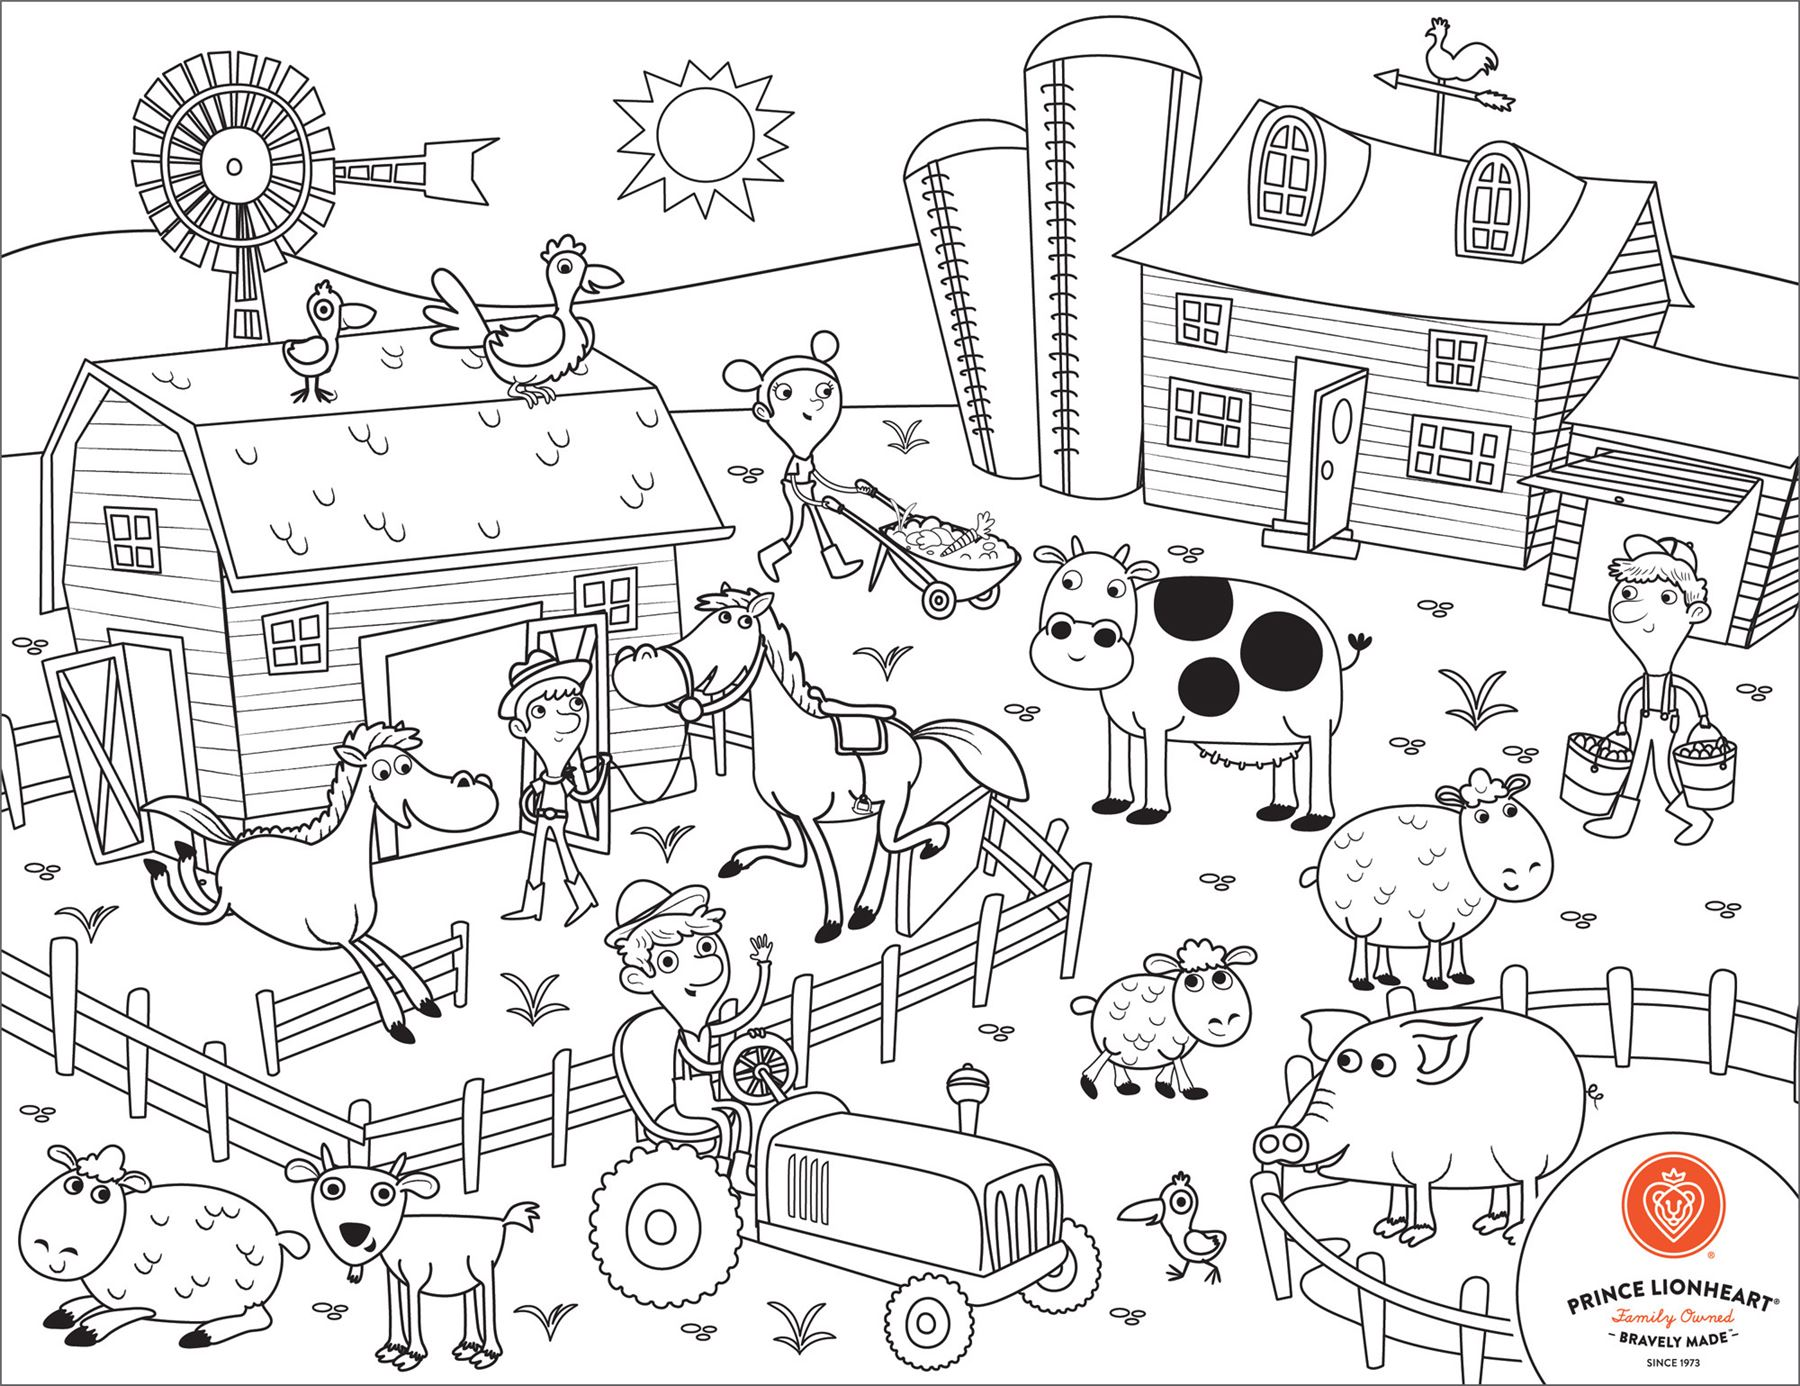 Prince Lionheart Colour Draw Placemat Farm Baby Activity